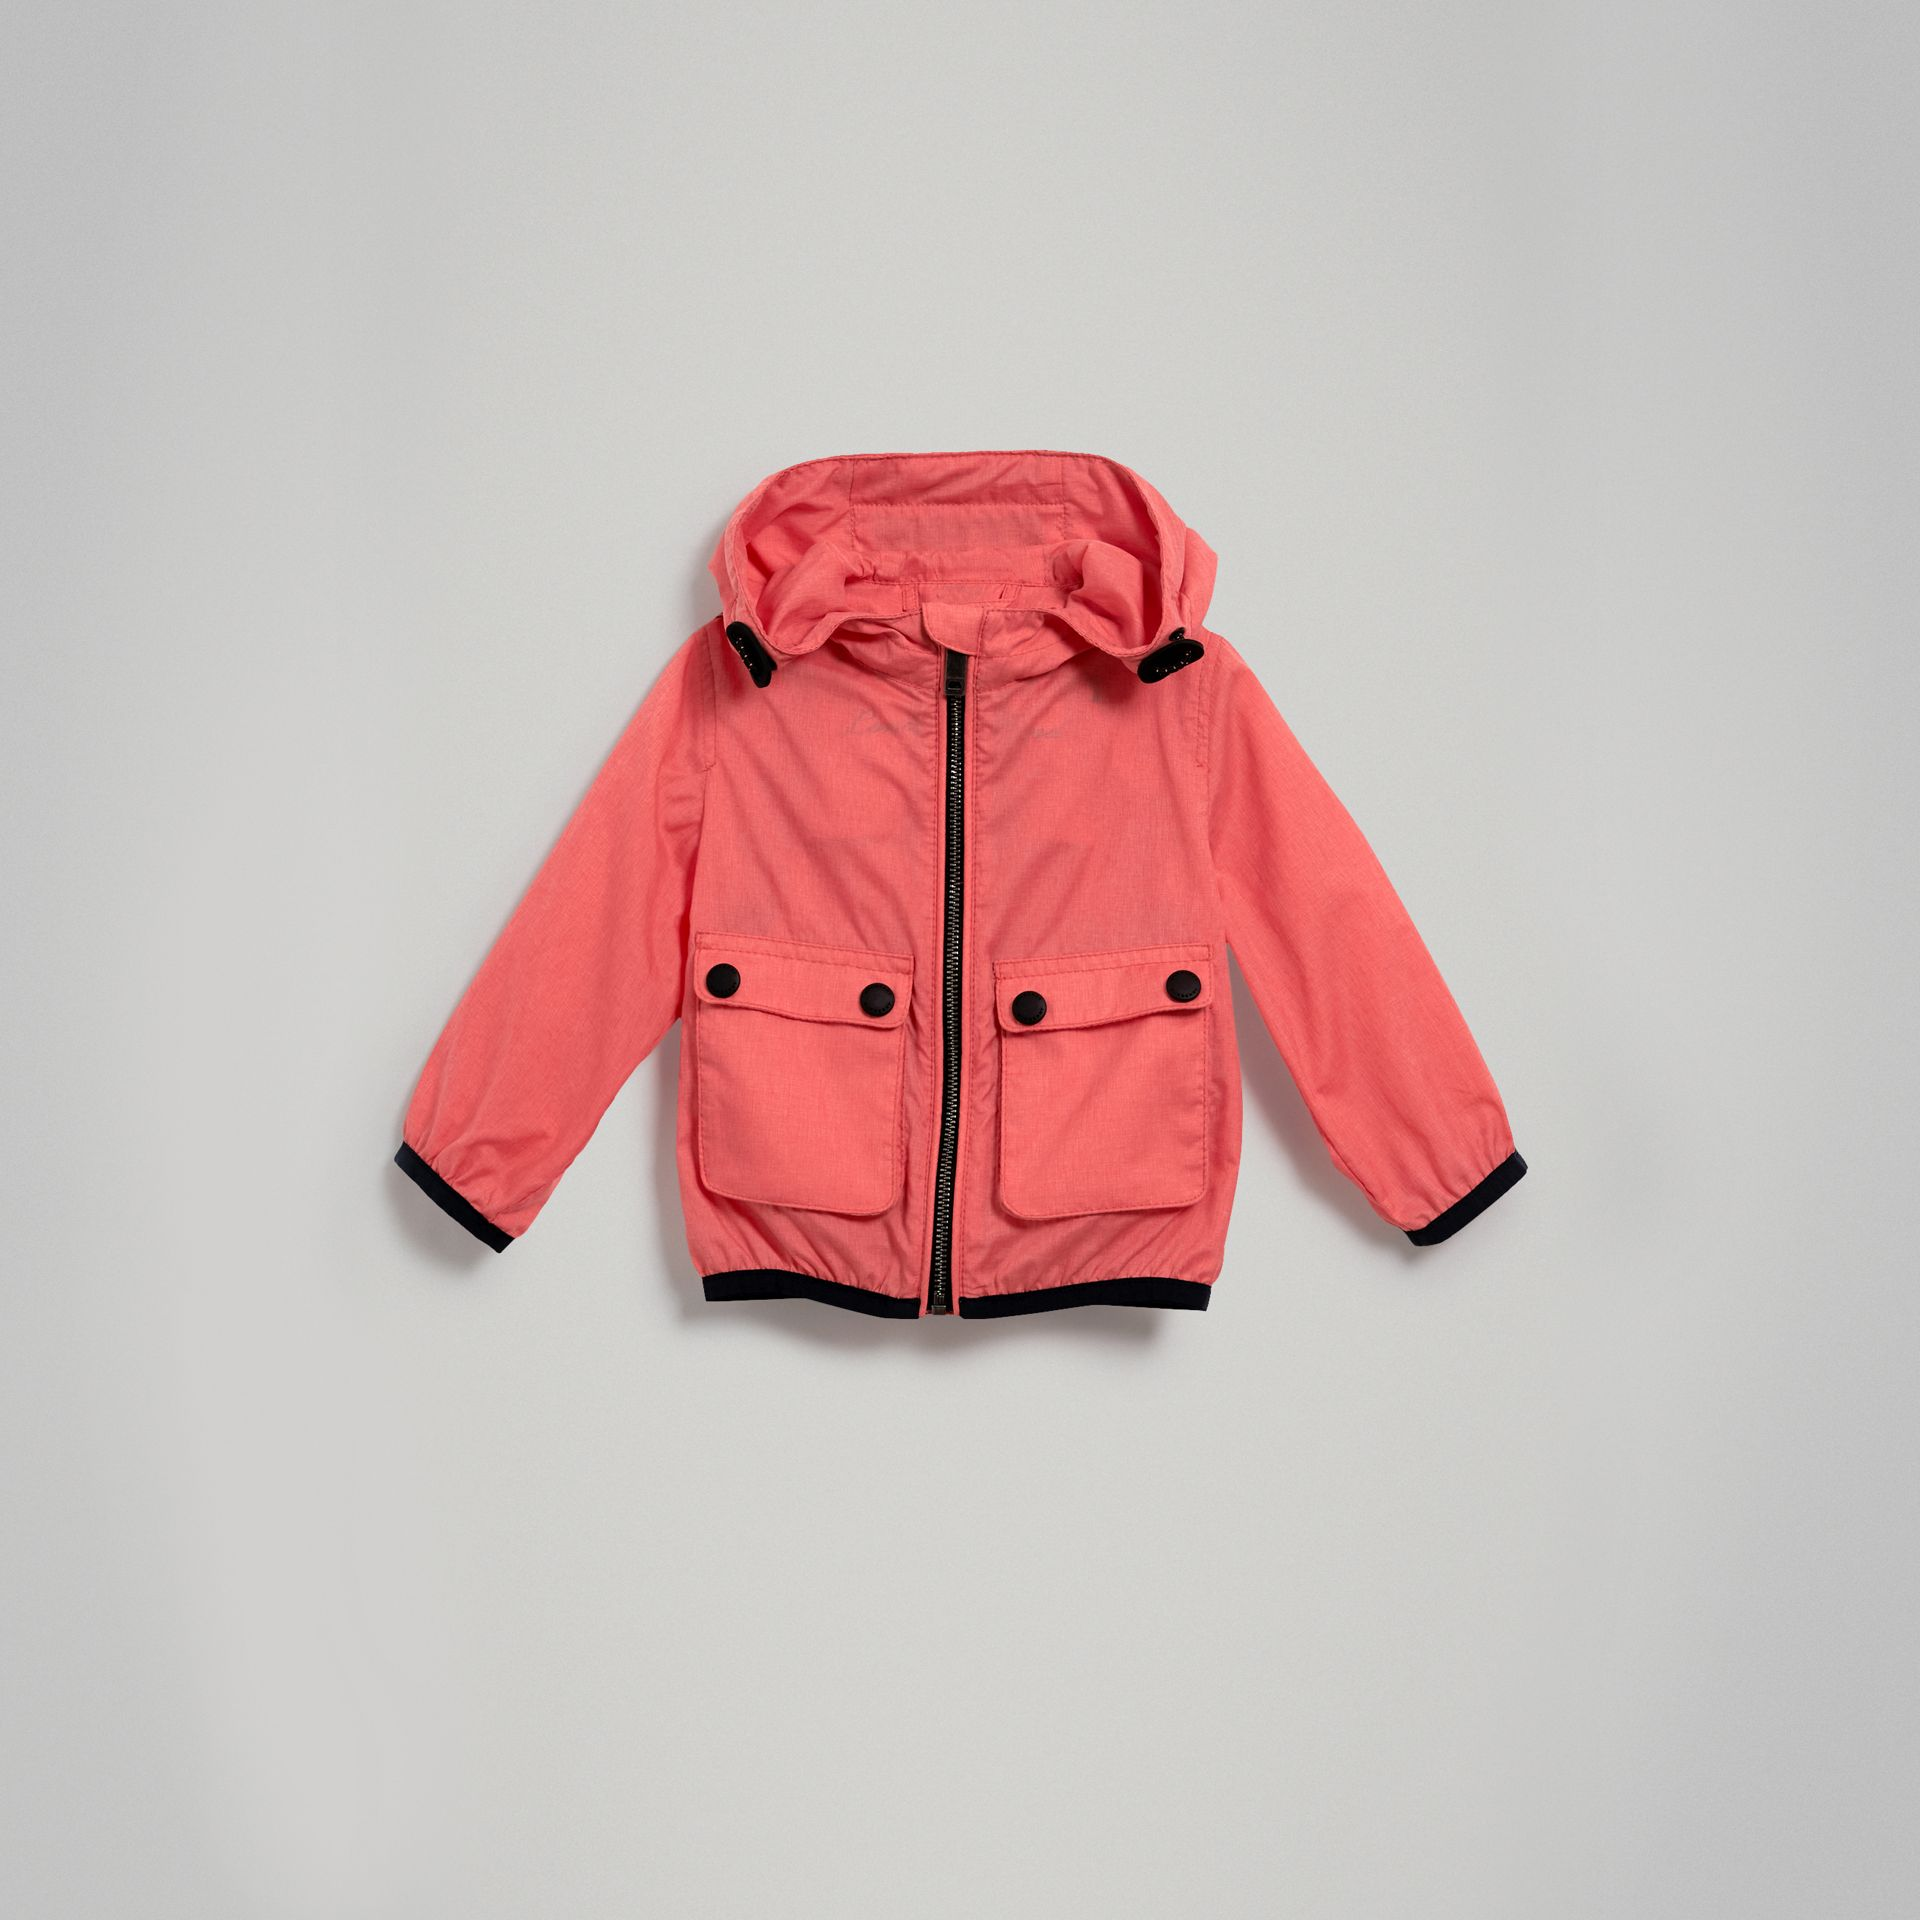 Showerproof Hooded Jacket in Bright Coral Pink | Burberry United States - gallery image 0